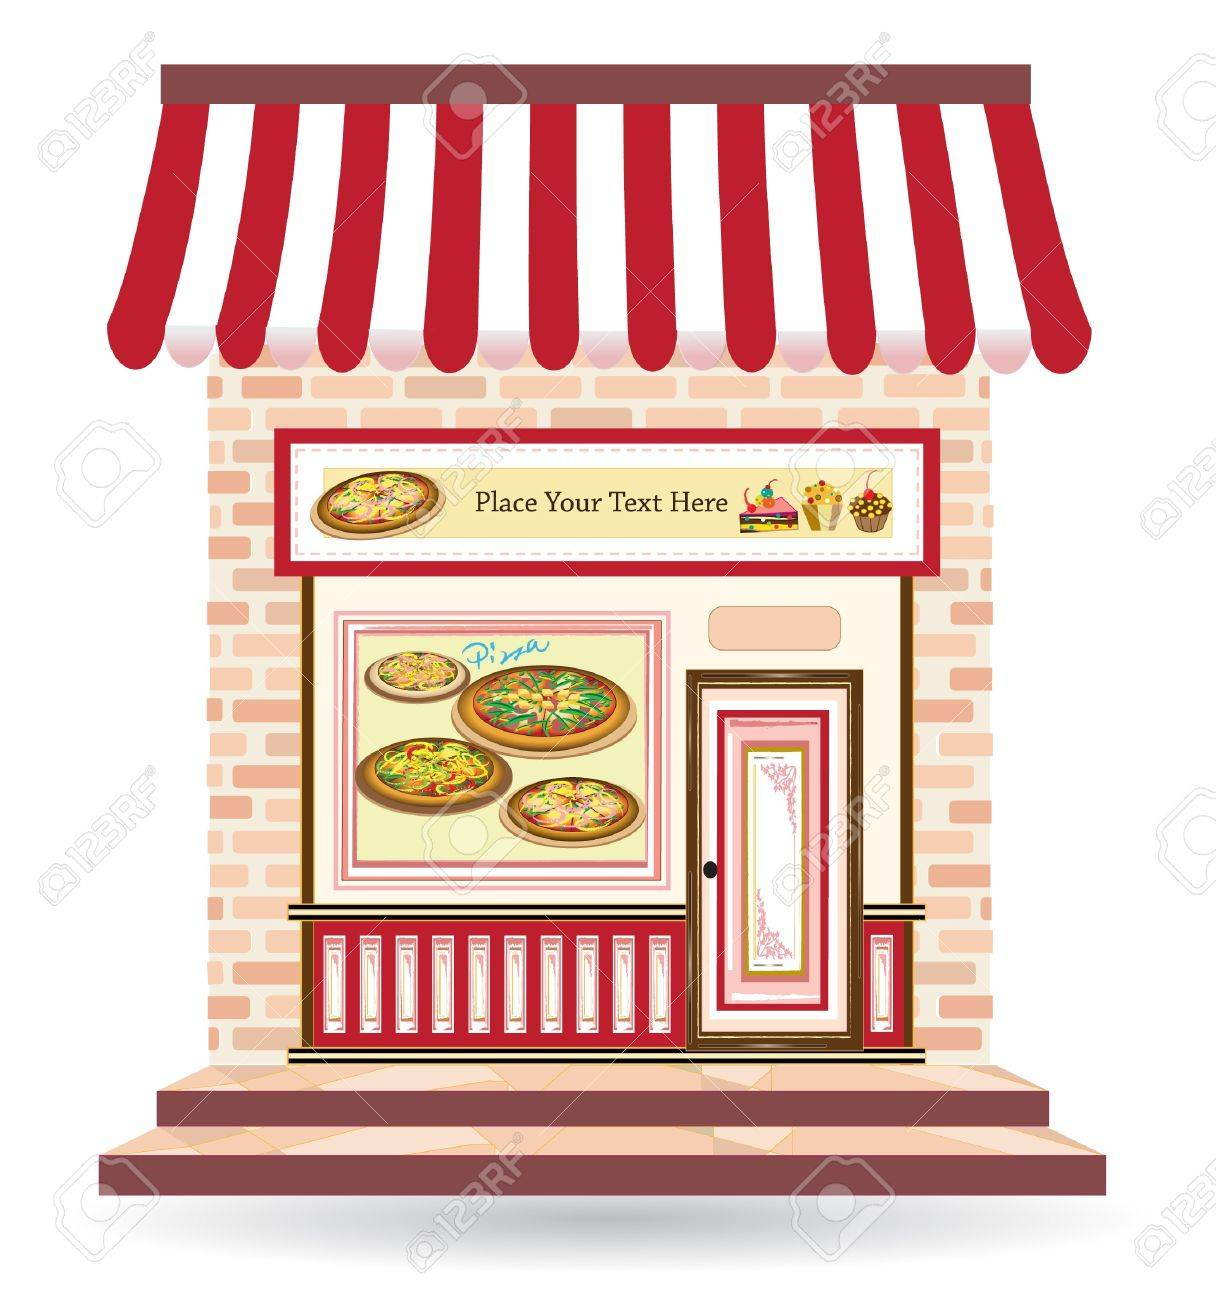 pizza restaurant with signs on door and in front Stock Vector - 15362206